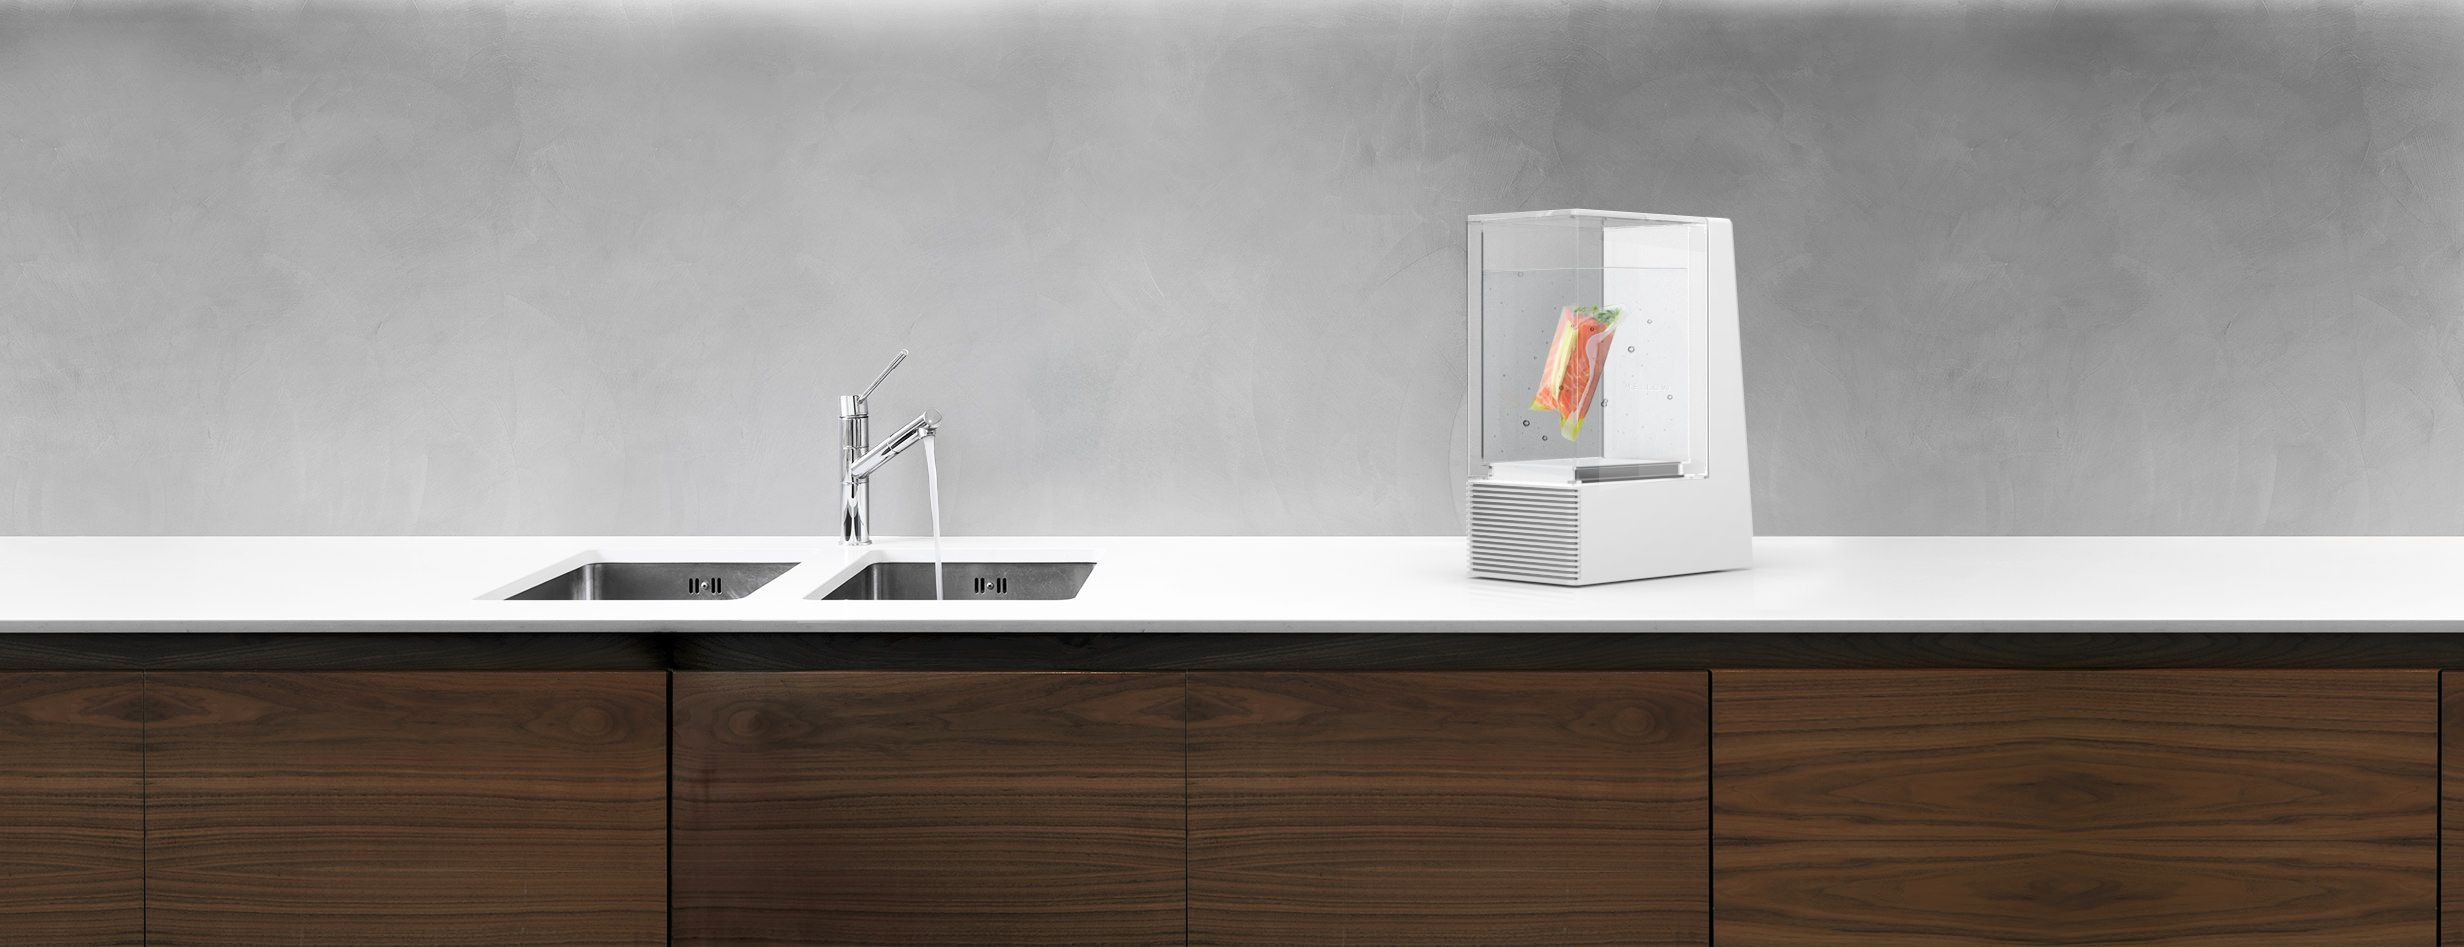 Sous-vide home cooker. | Things for the House | Pinterest | Home